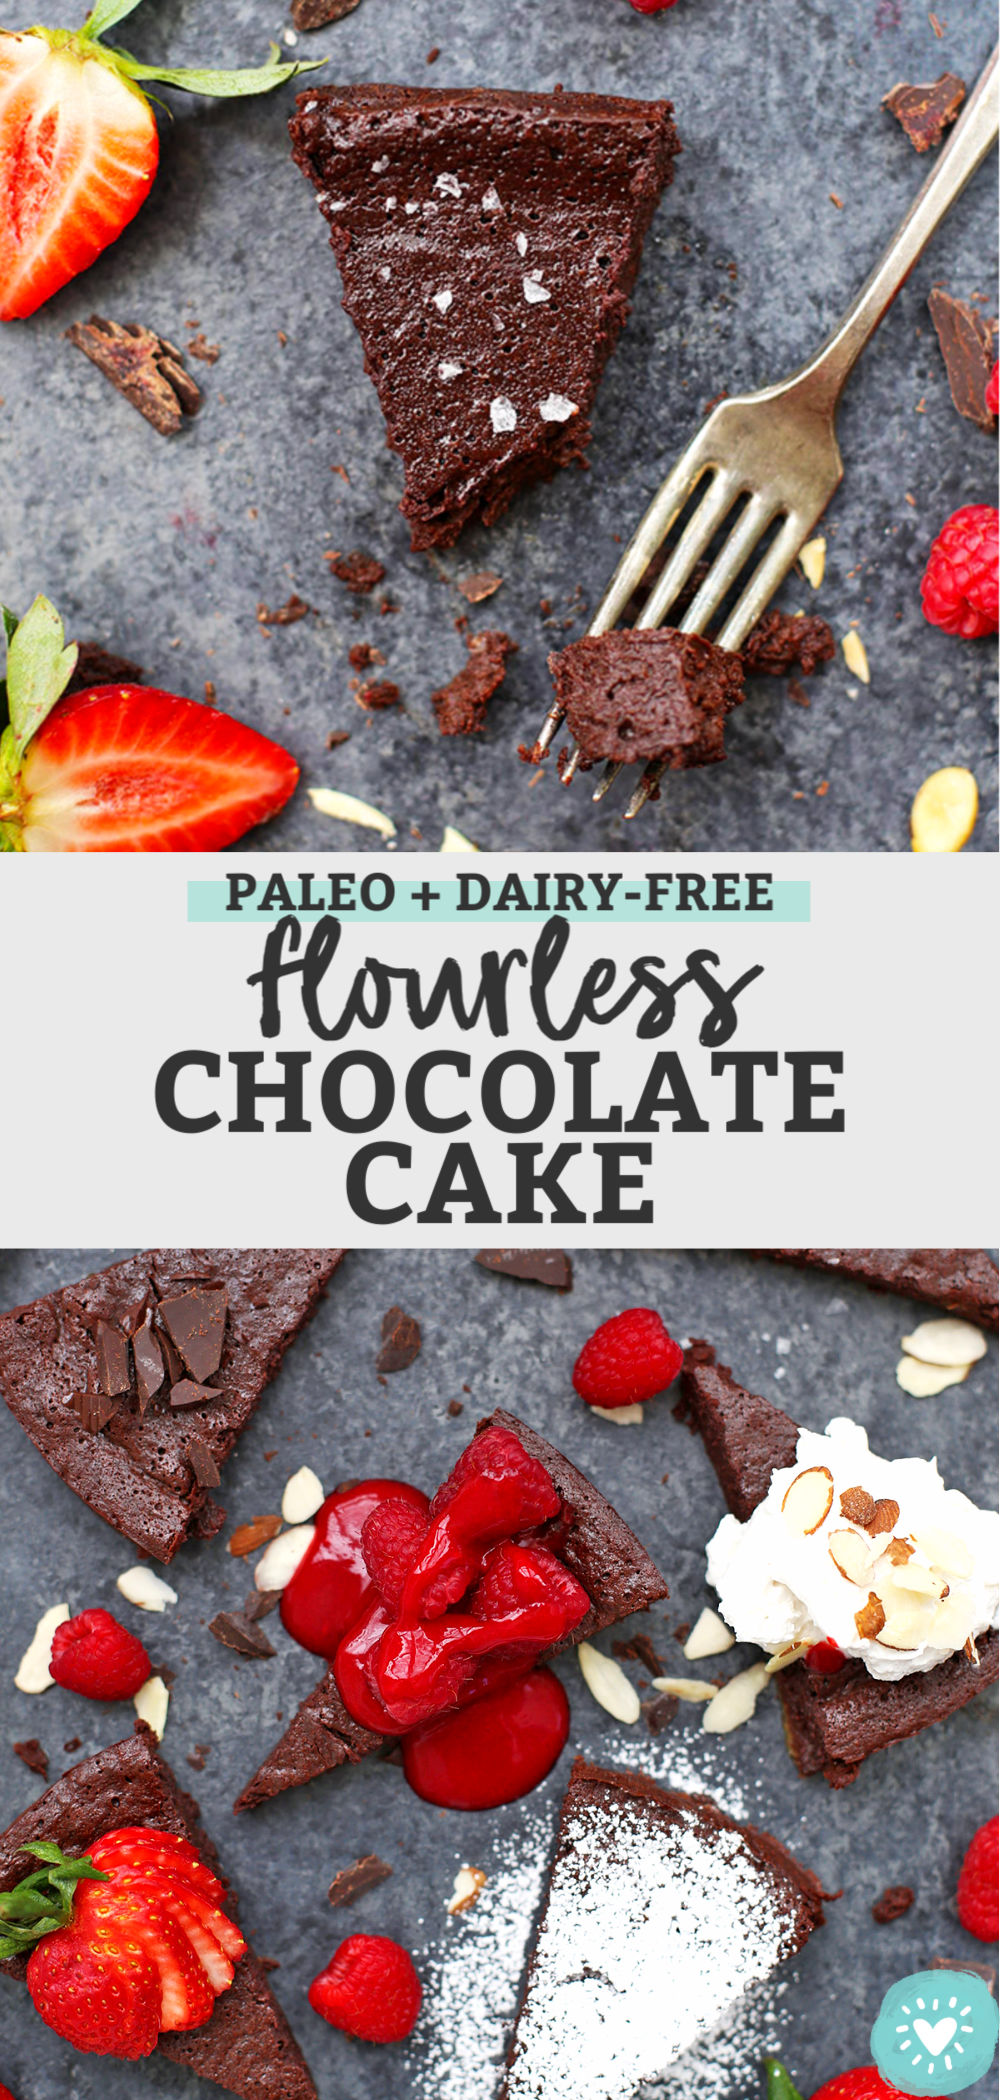 Dairy Free Flourless Chocolate Cake from One Lovely Life